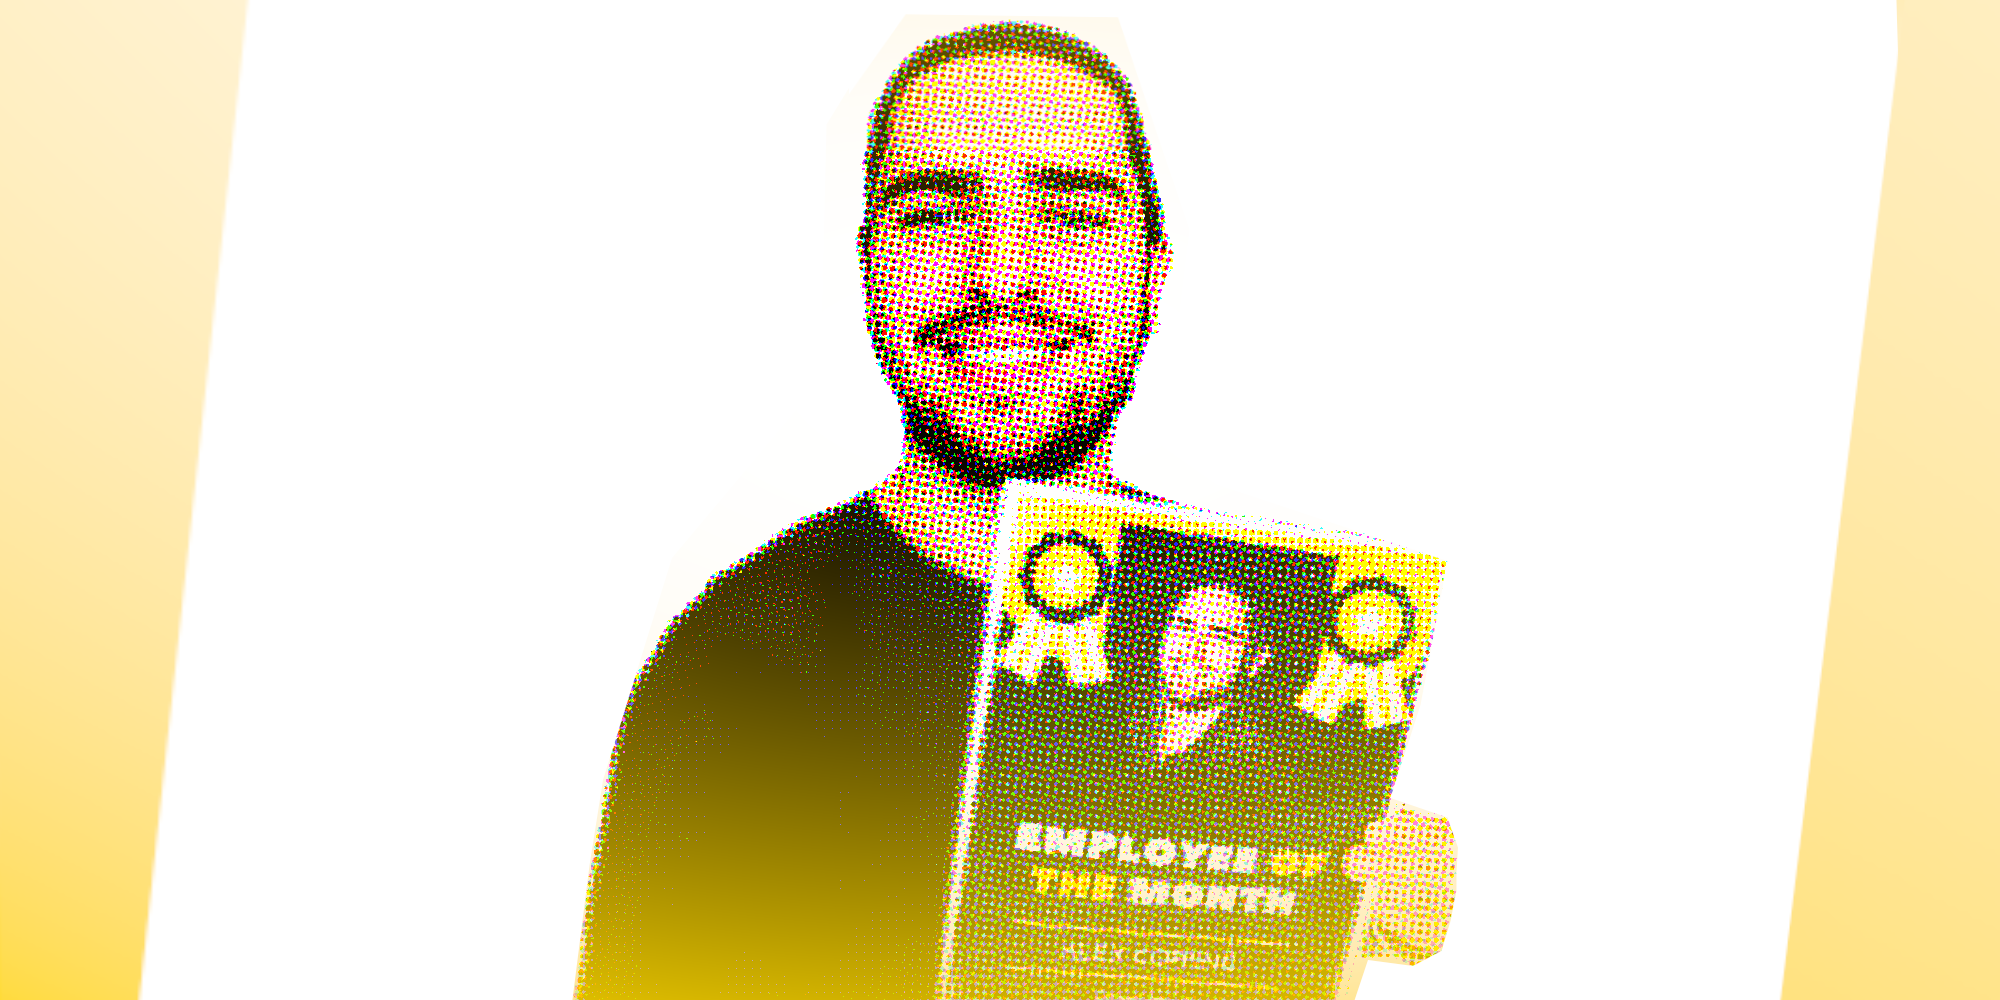 Congratulations to our October 2020 Employee of The Month, Alex Copping!